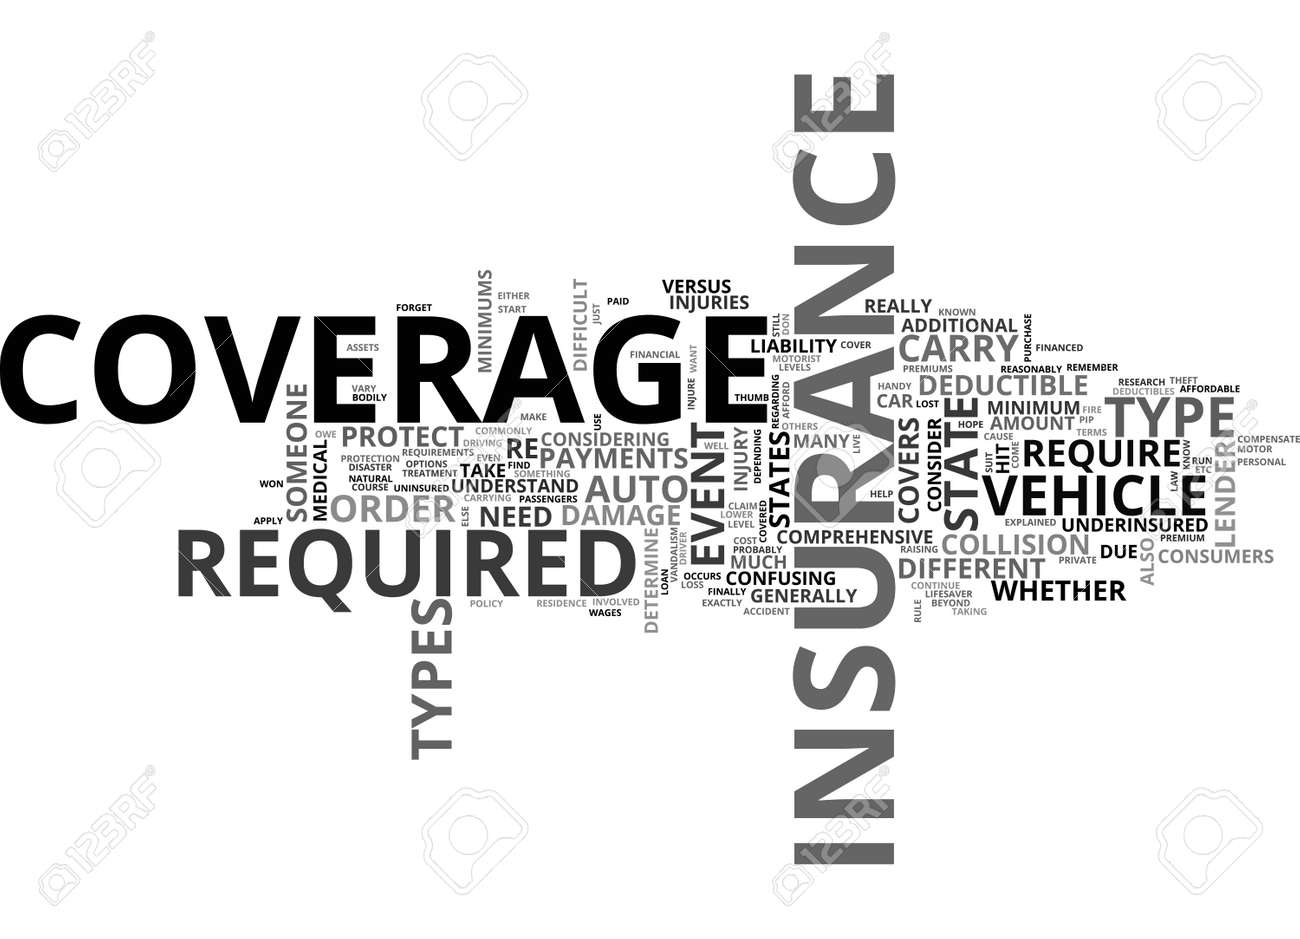 Auto Insurance Explained Text Word Cloud Concept Royalty Free